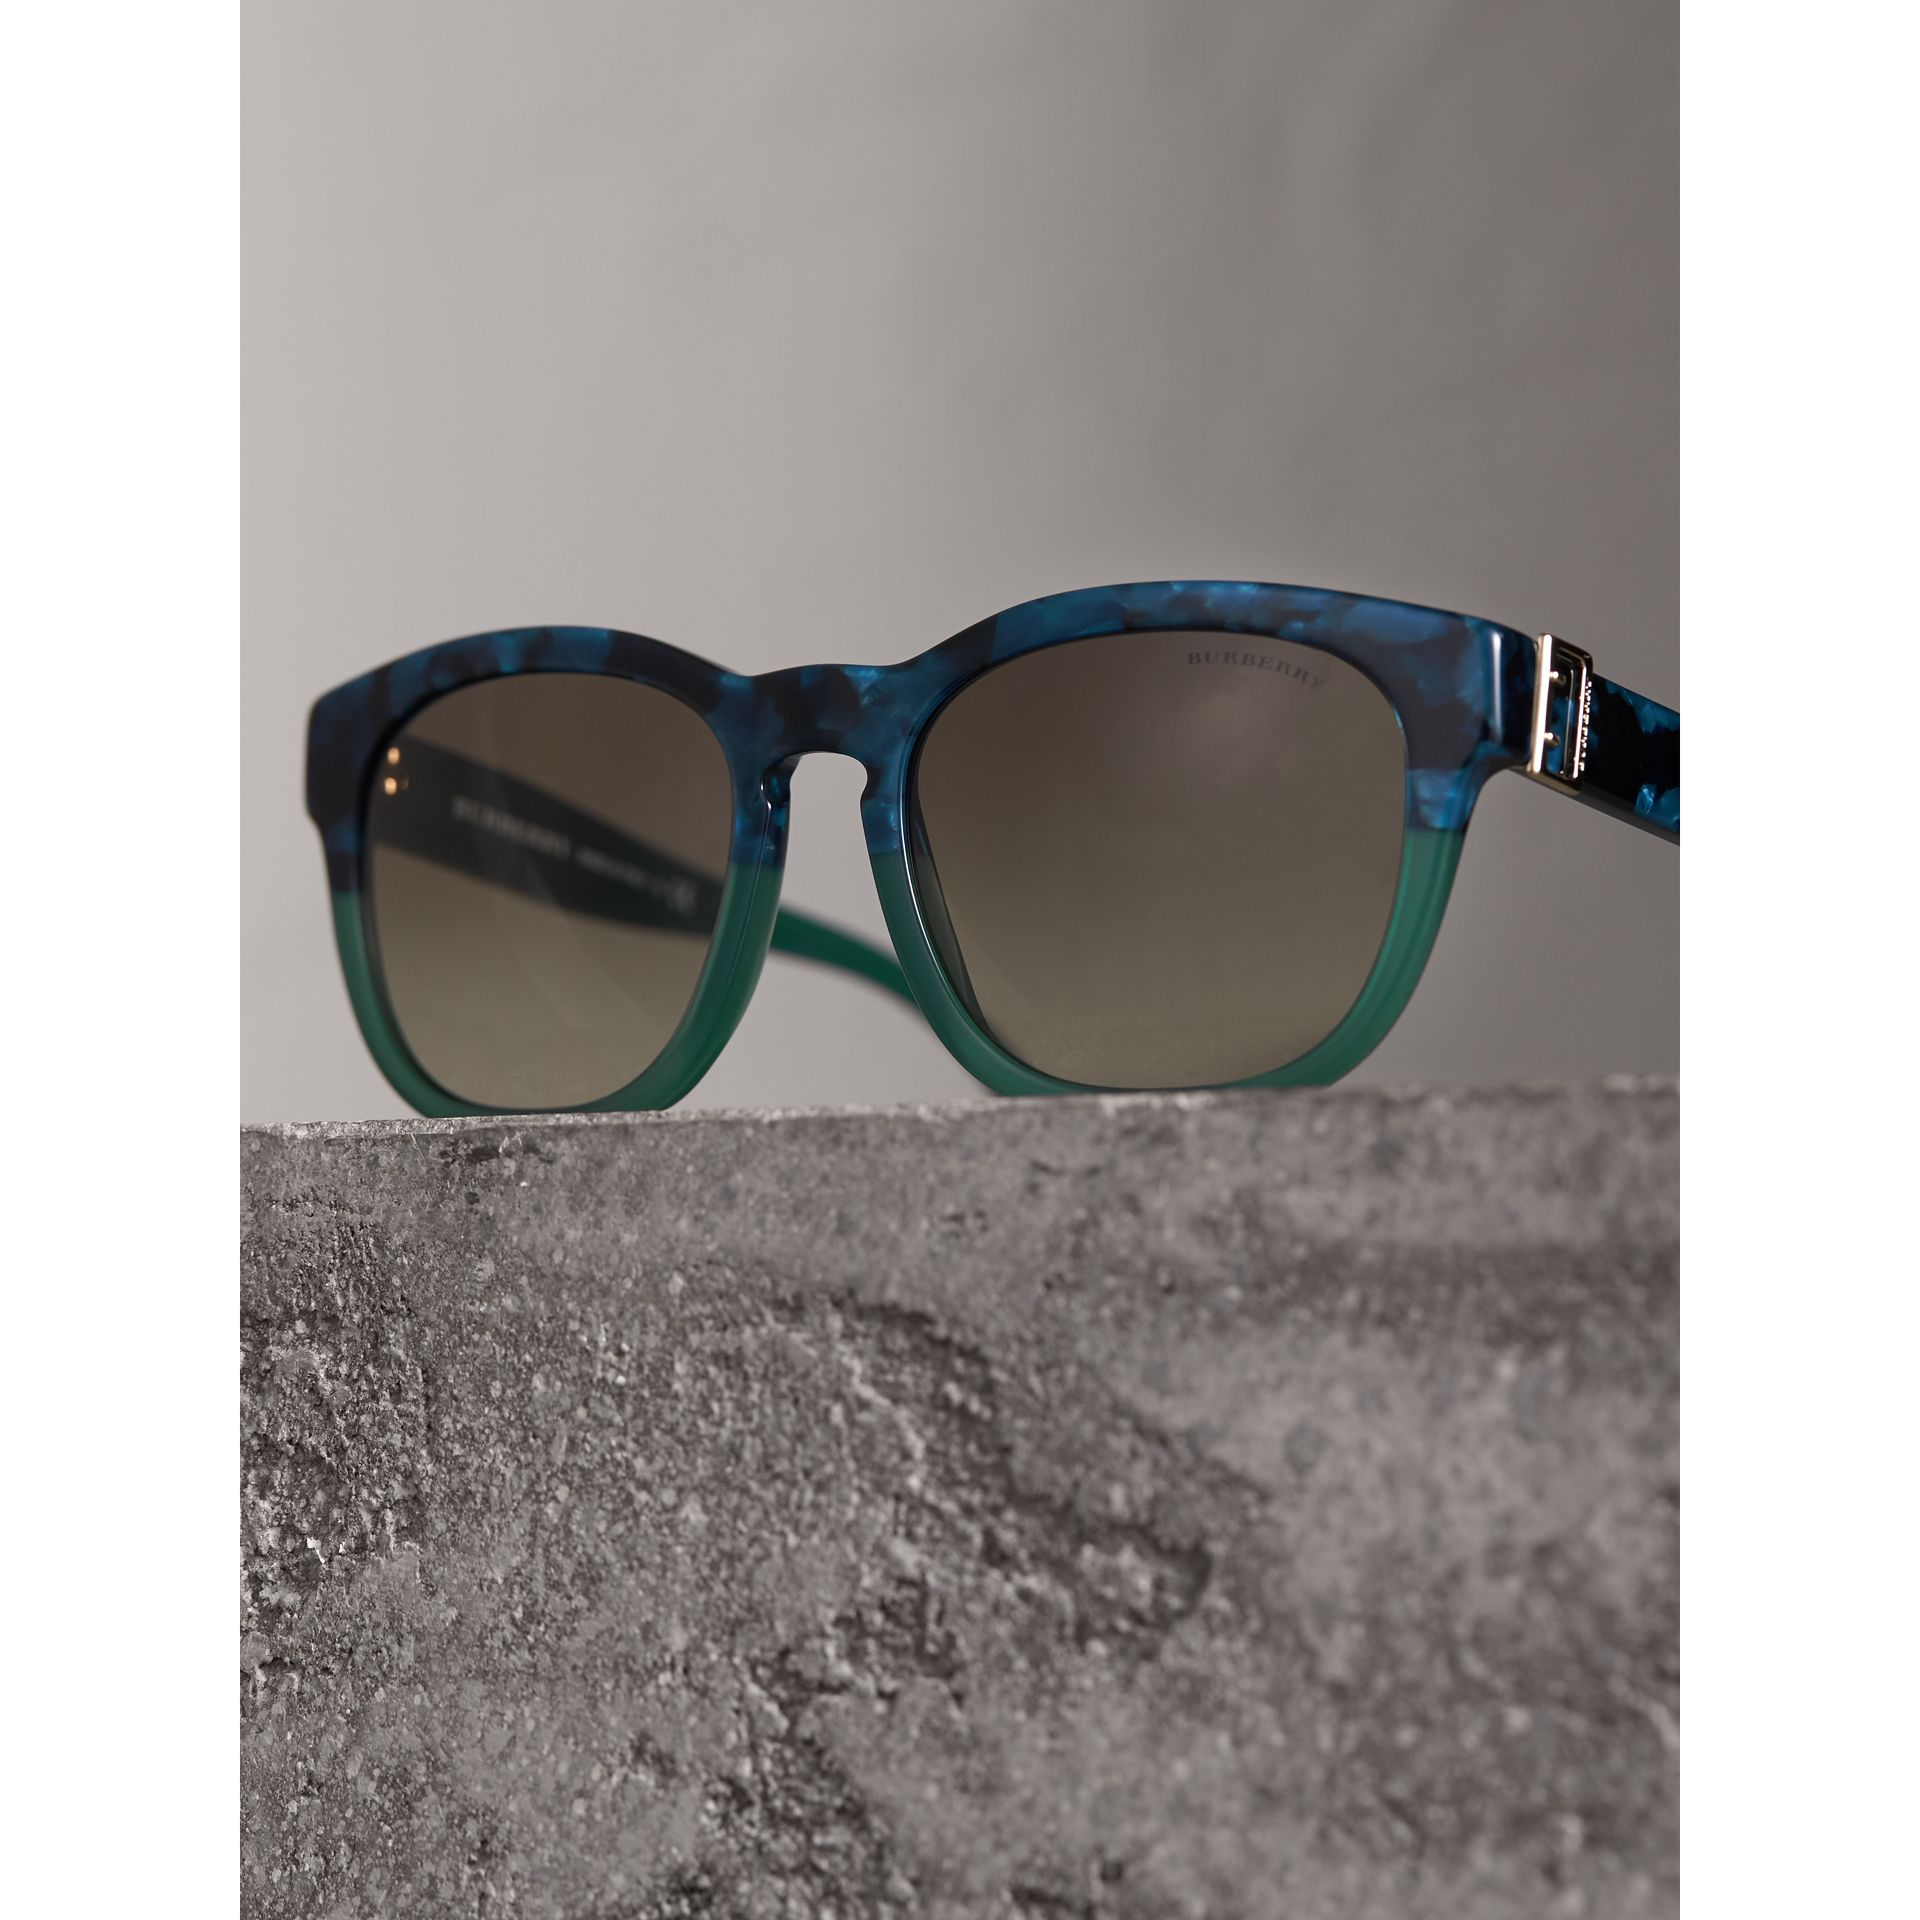 Buckle Detail Square Frame Sunglasses in Blue - Women | Burberry Australia - gallery image 2